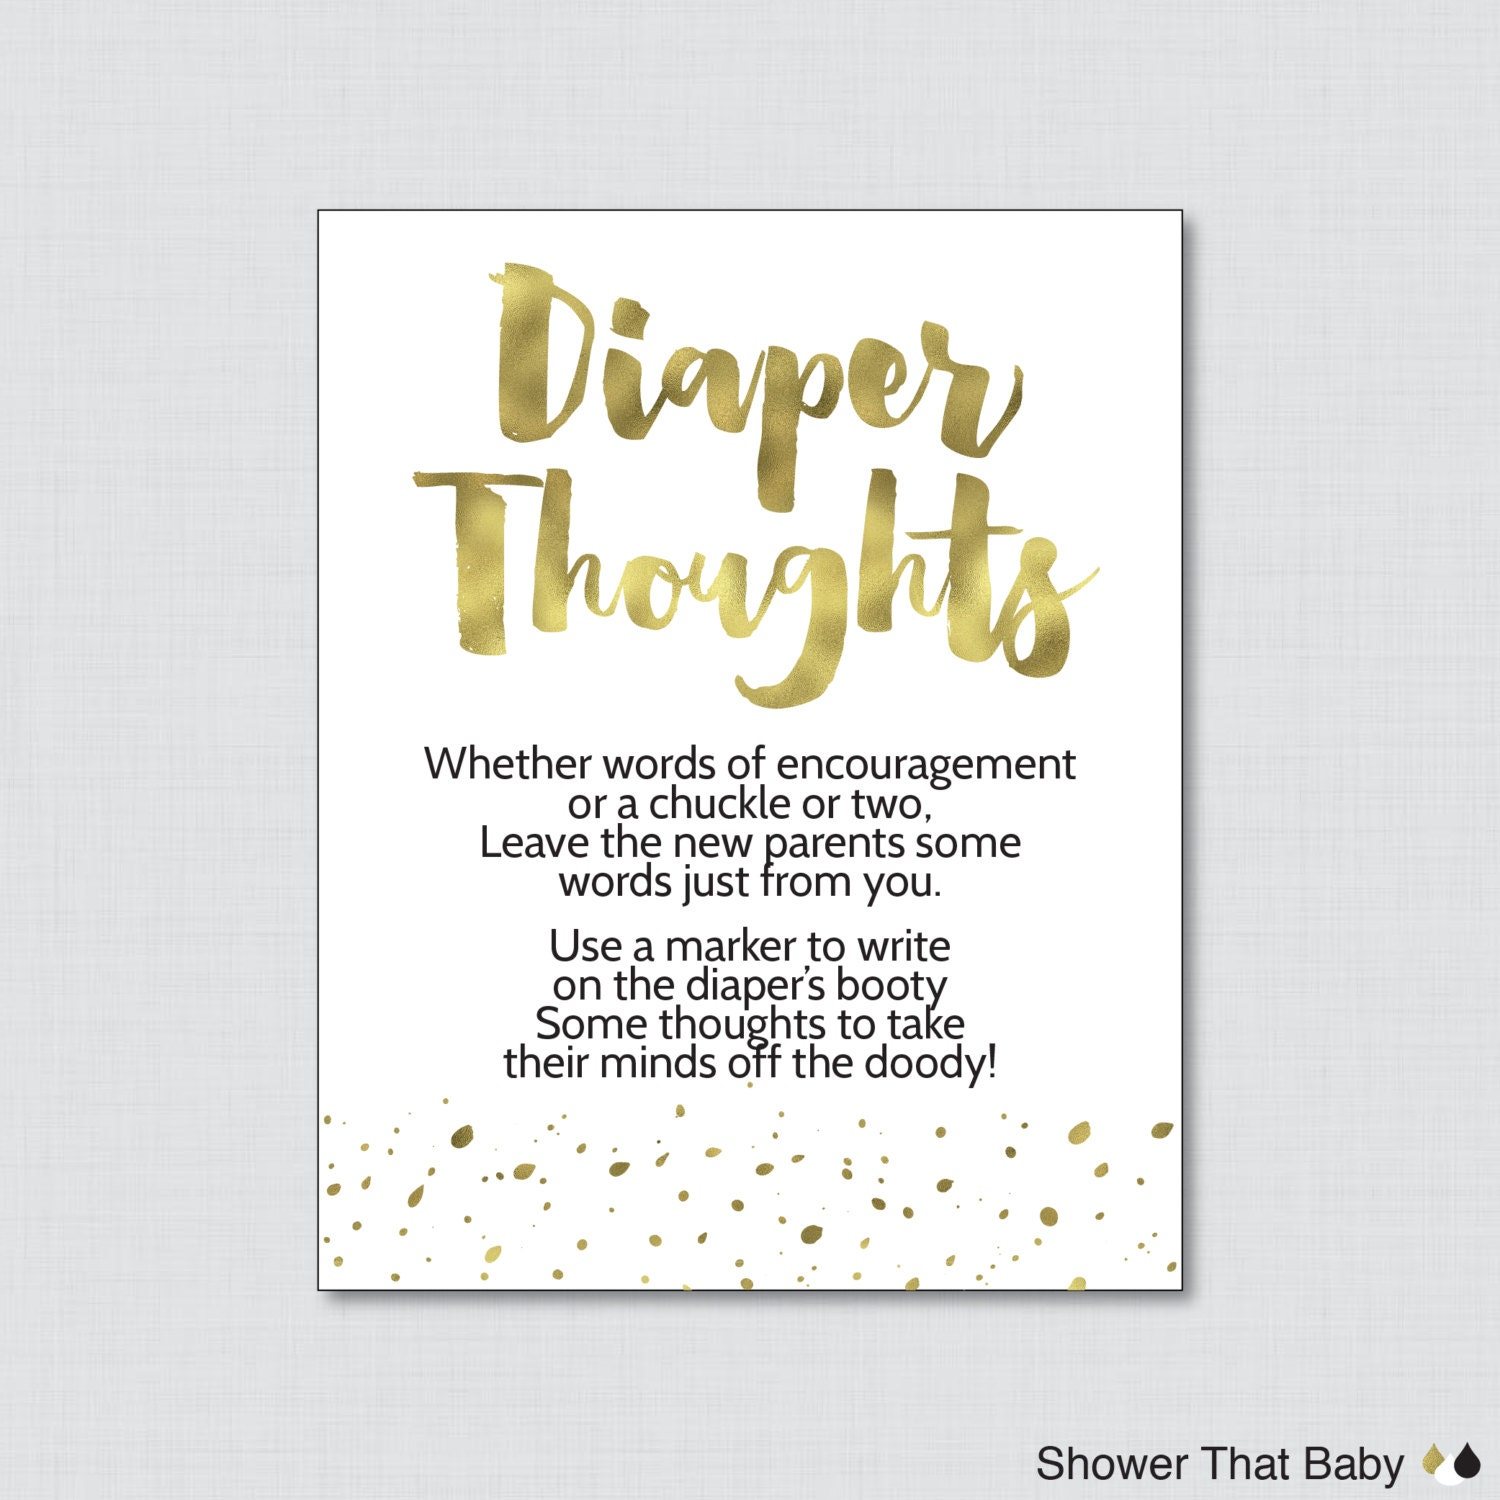 White And Gold Baby Shower Diaper Thoughts Game Printable